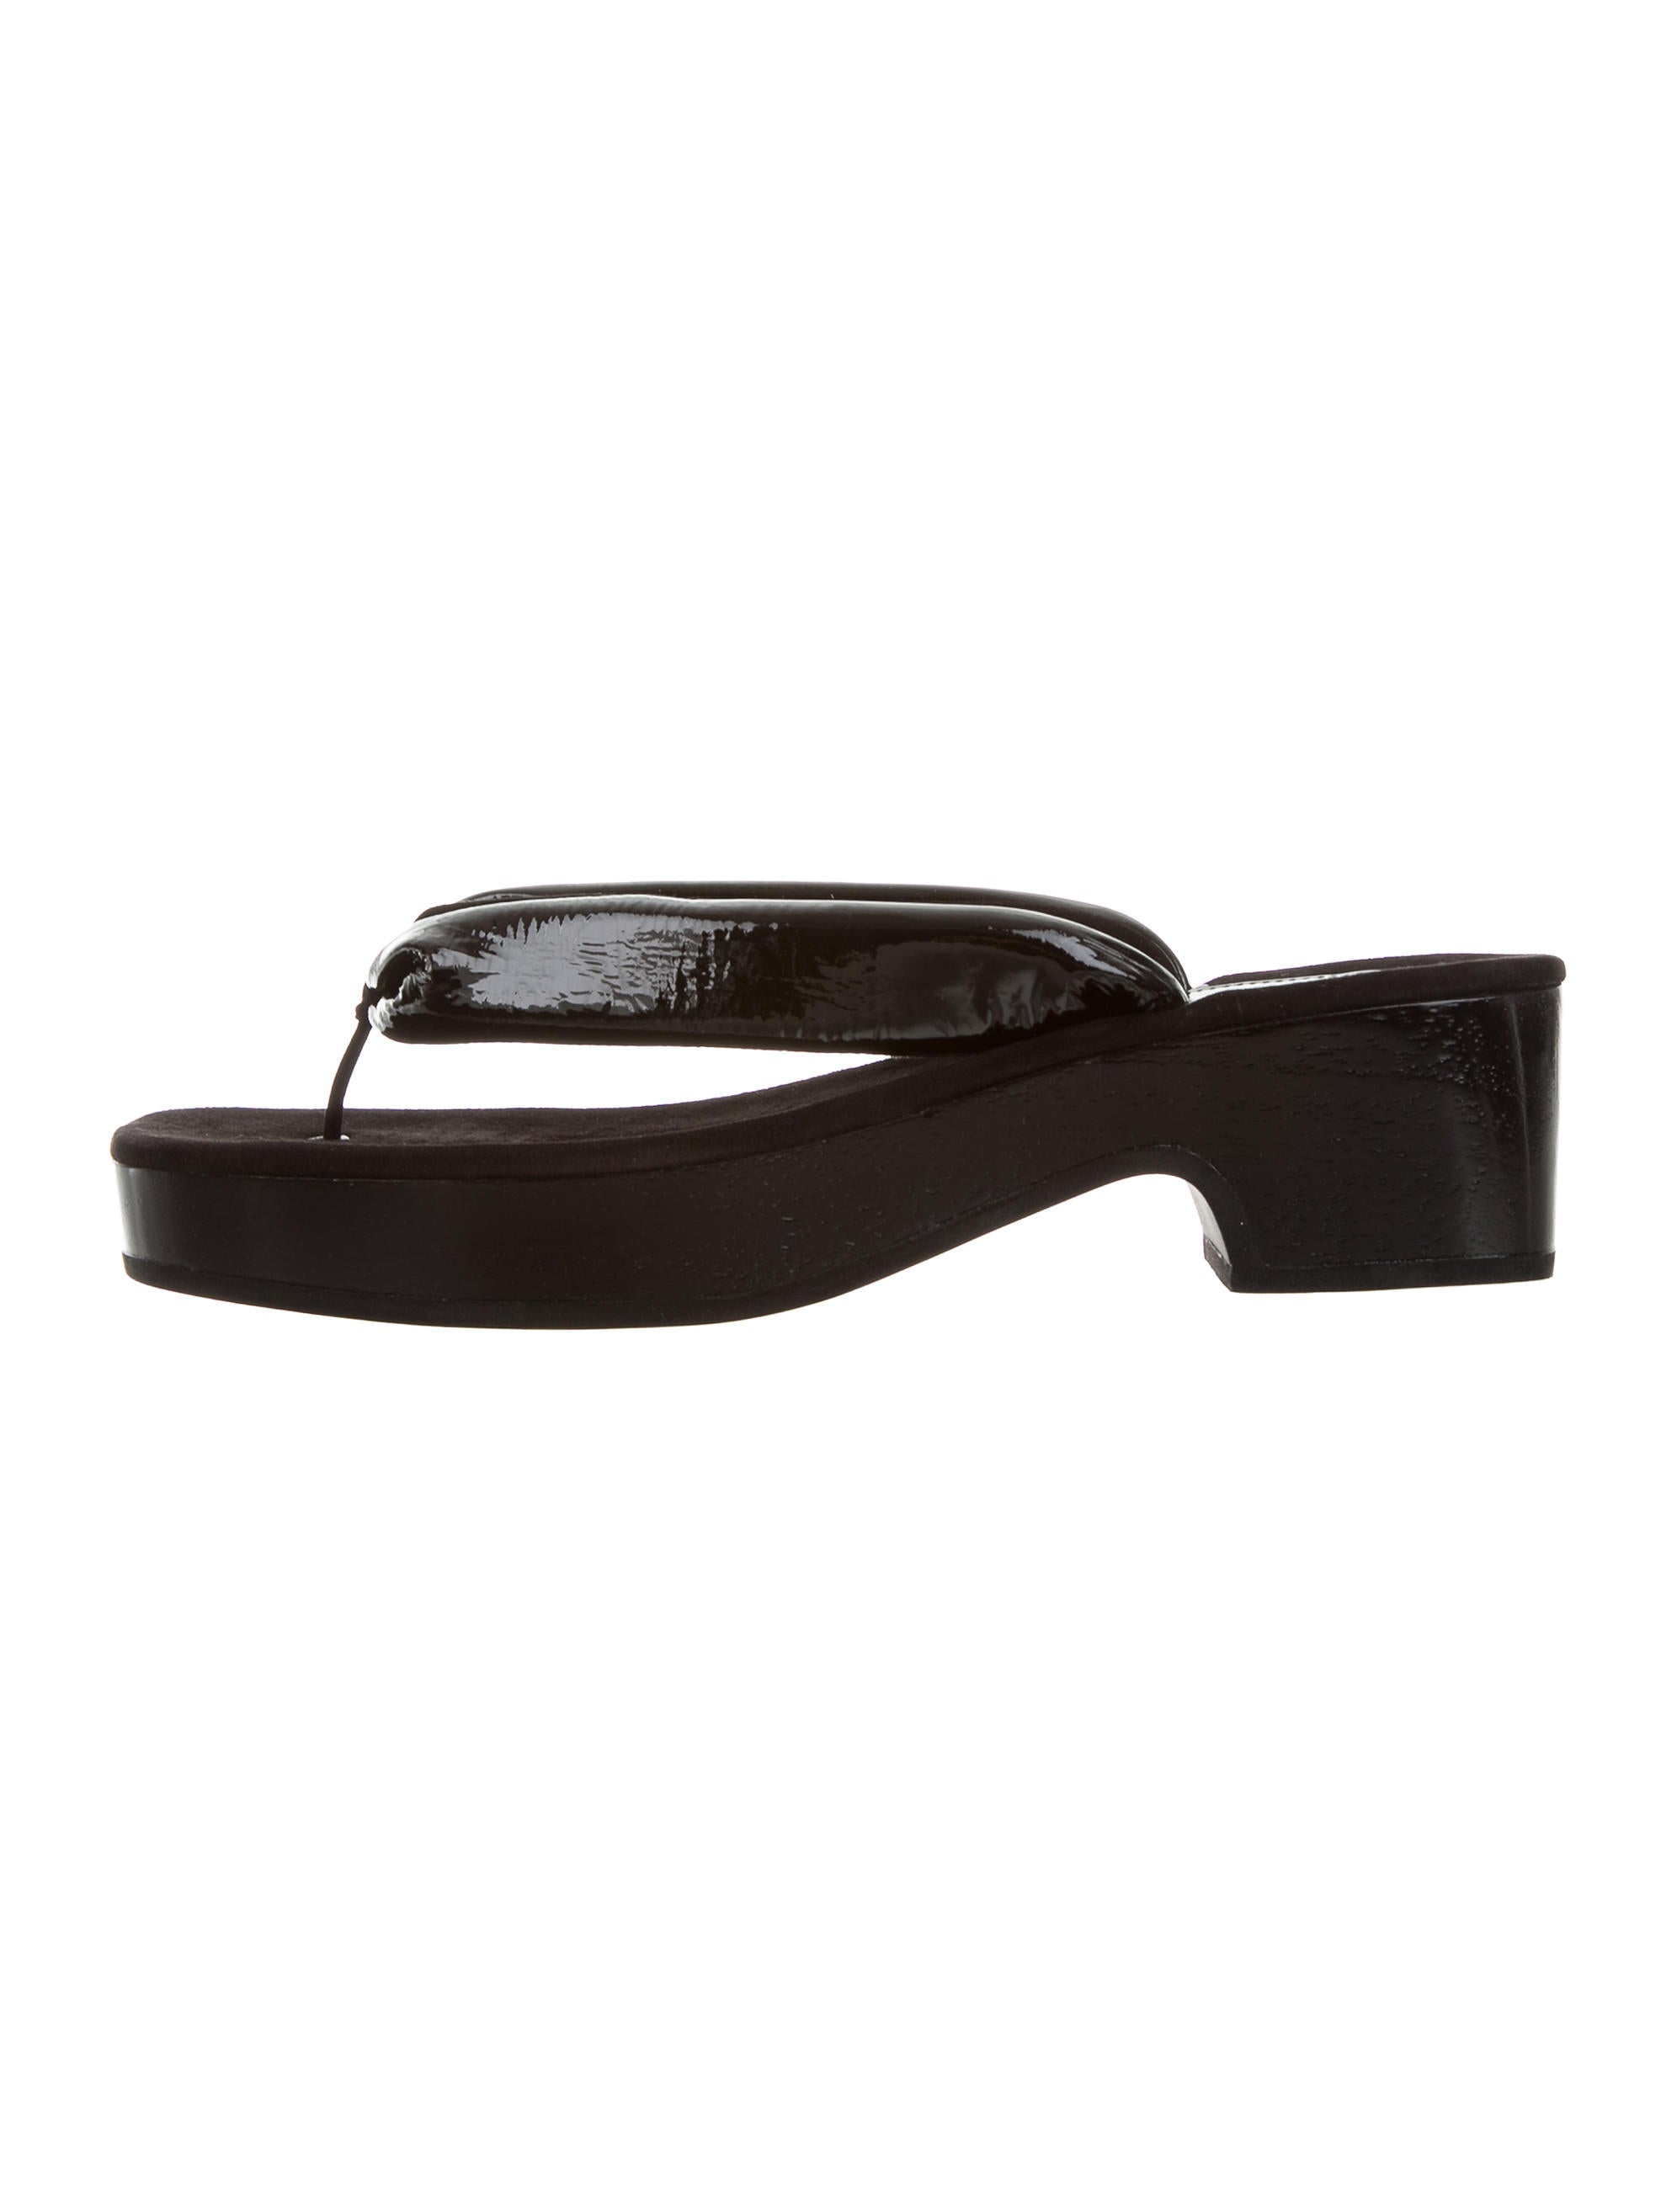 Dries Van Noten Suede Thong Sandals w/ Tags with mastercard sale online shipping discount authentic CncvTf